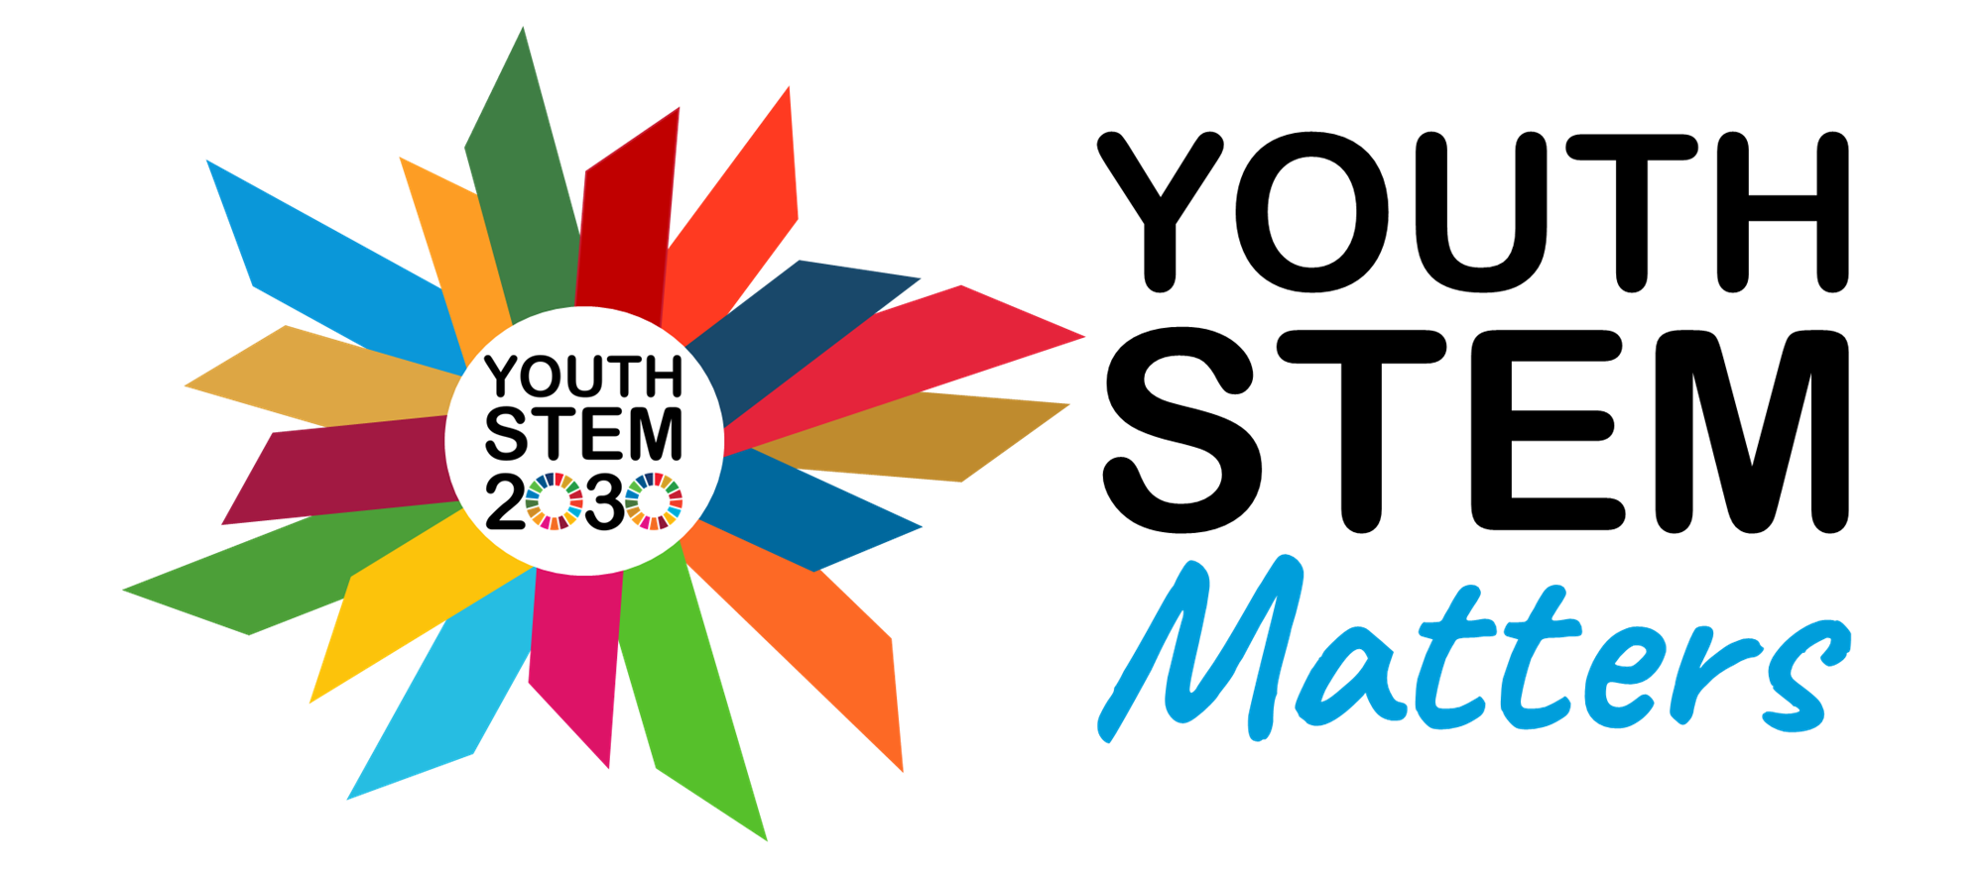 Youth STEM 2030